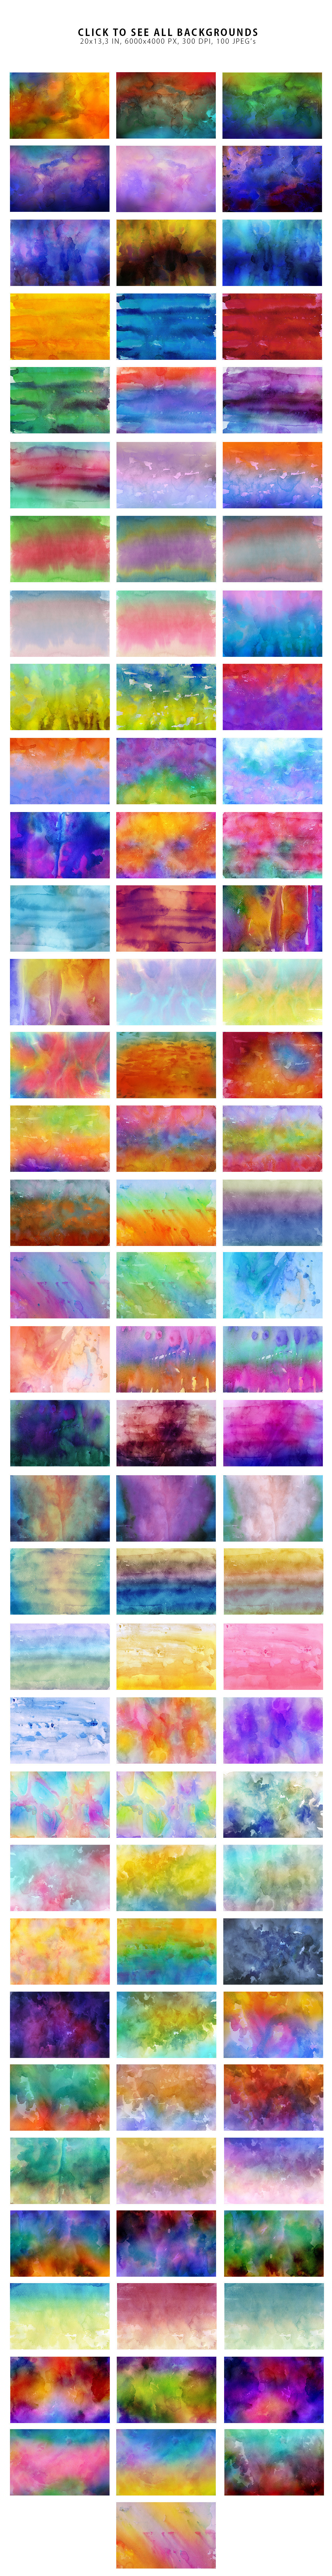 100 Watercolor Backgrounds Vol.3 example image 9